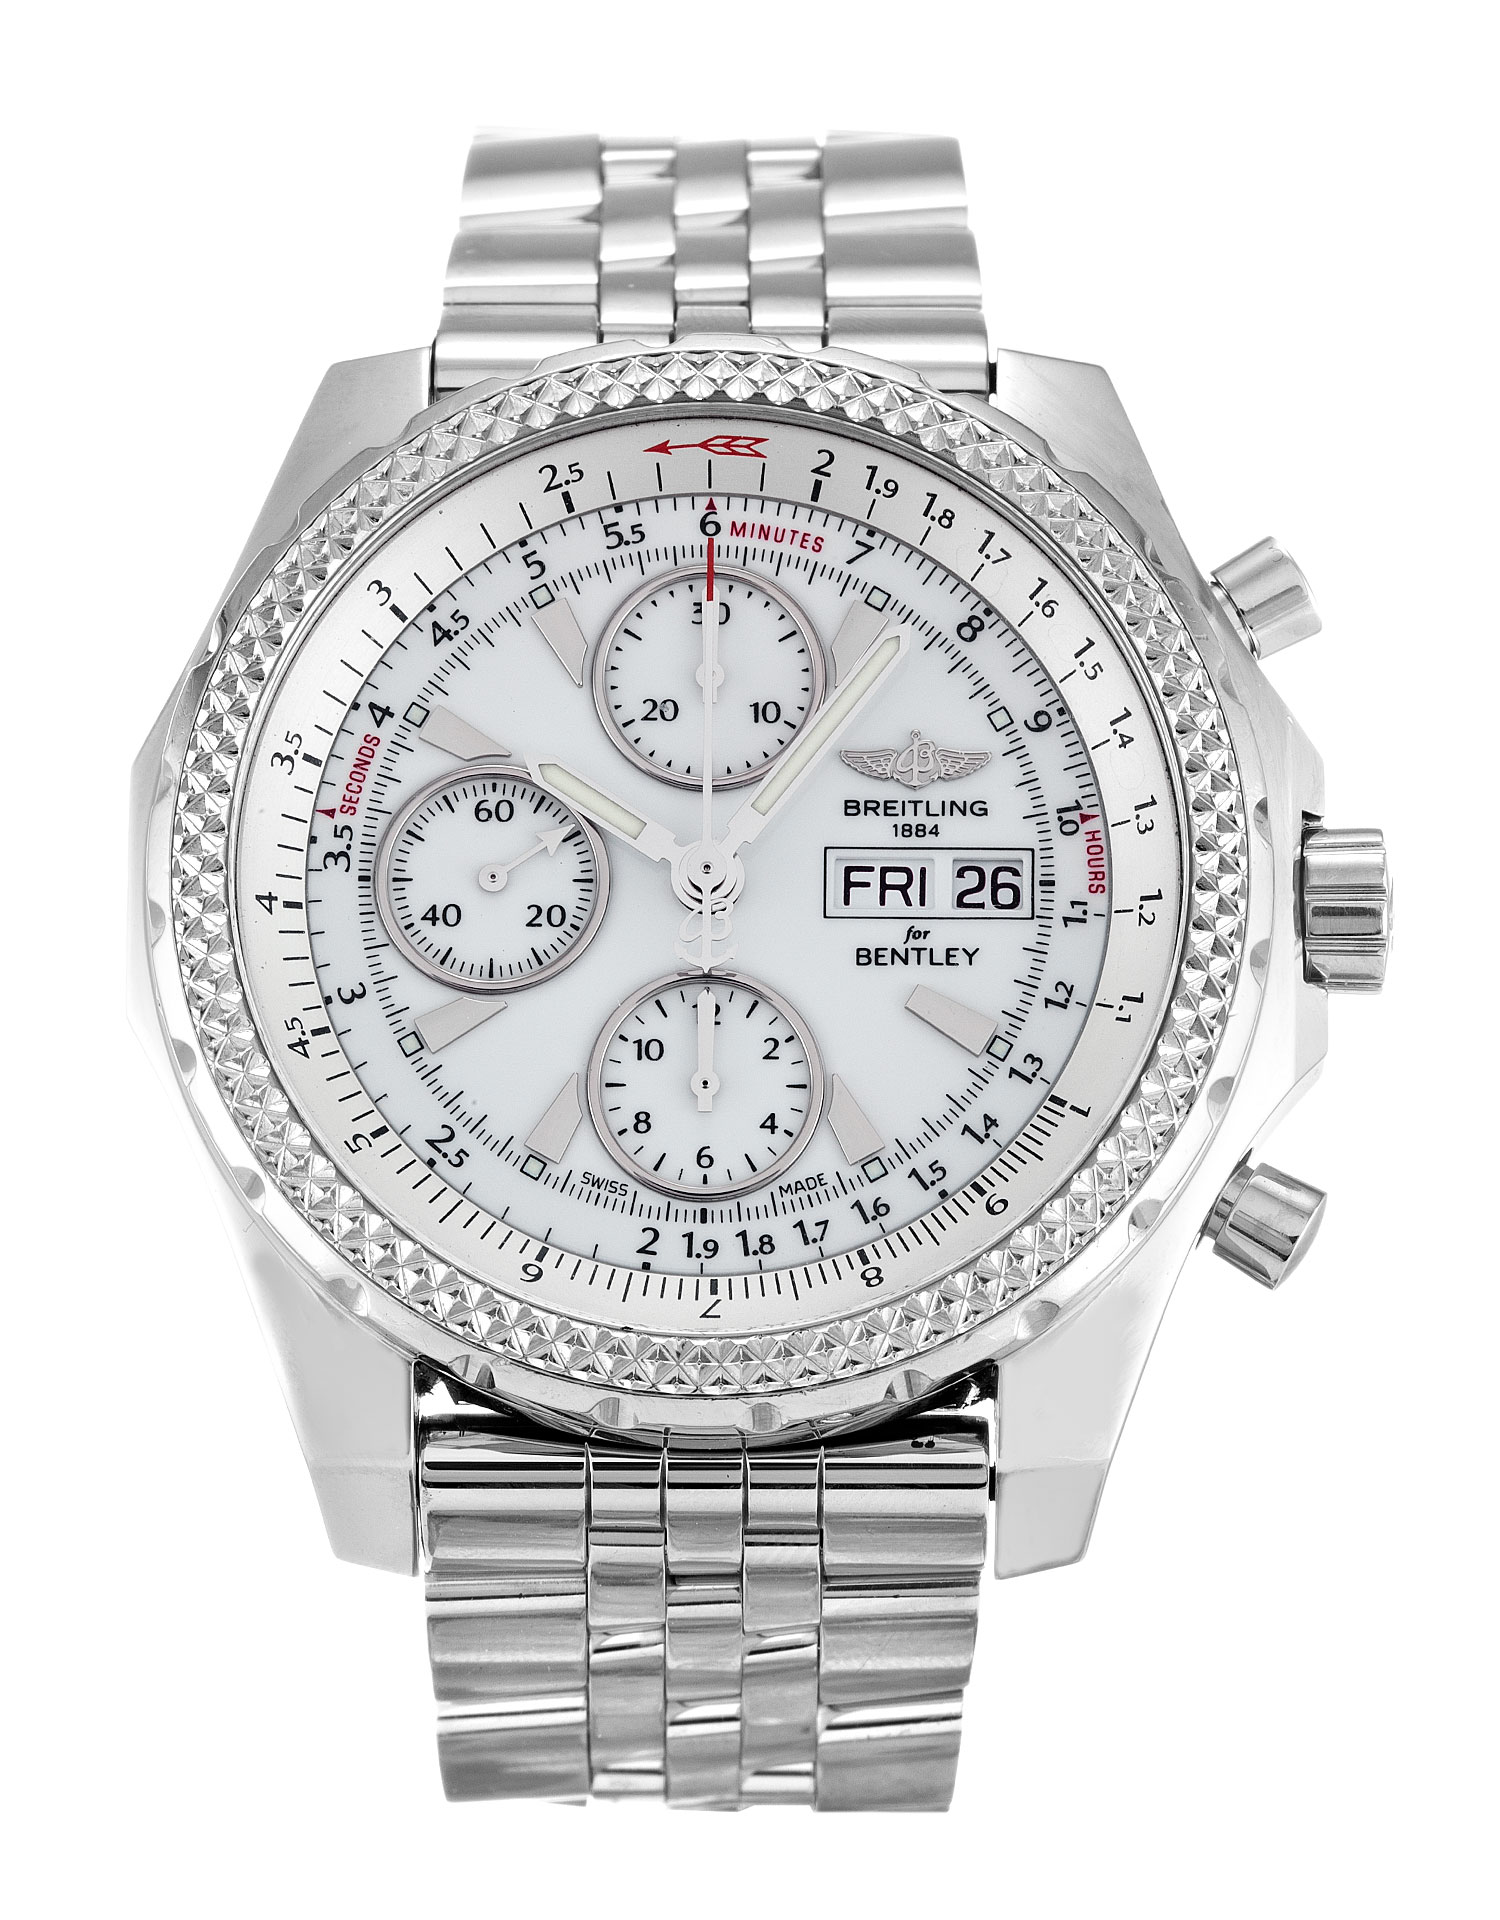 Breitling Bentley Gt A13362 Mens 44.8 Mm Steel Case Automatic Movement – iapac.to